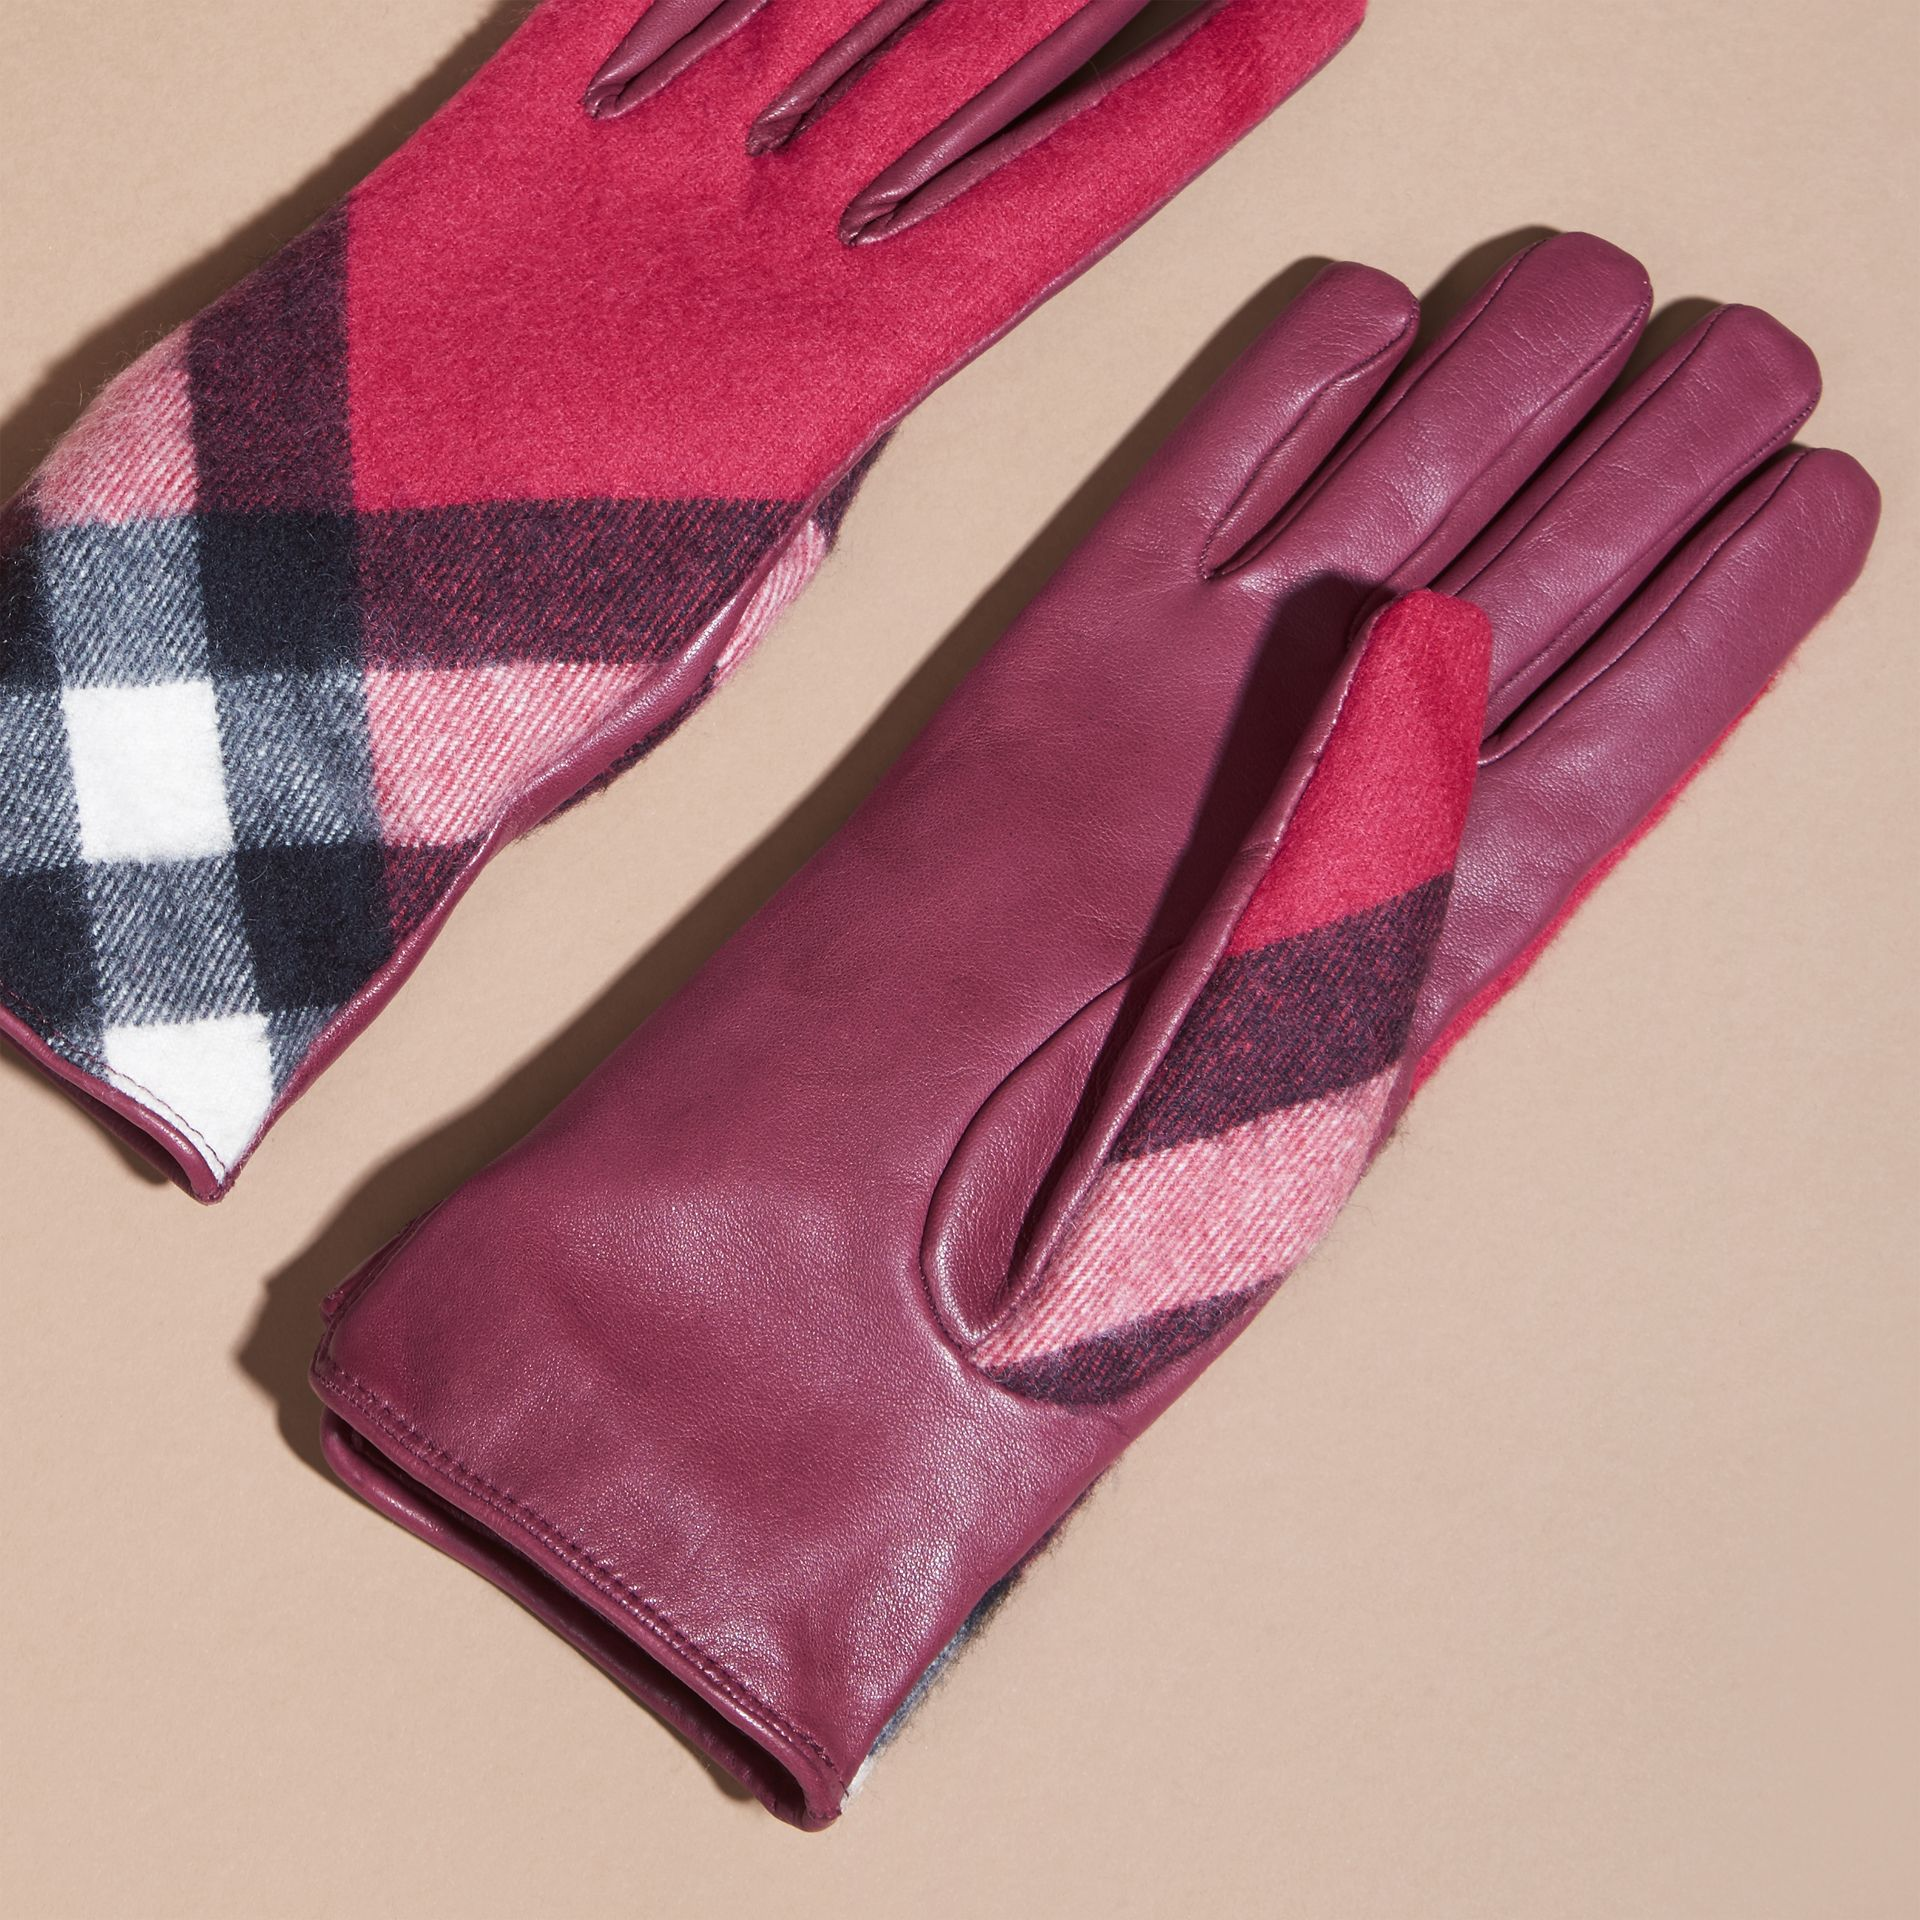 Leather and Check Cashmere Gloves Fuchsia - gallery image 3